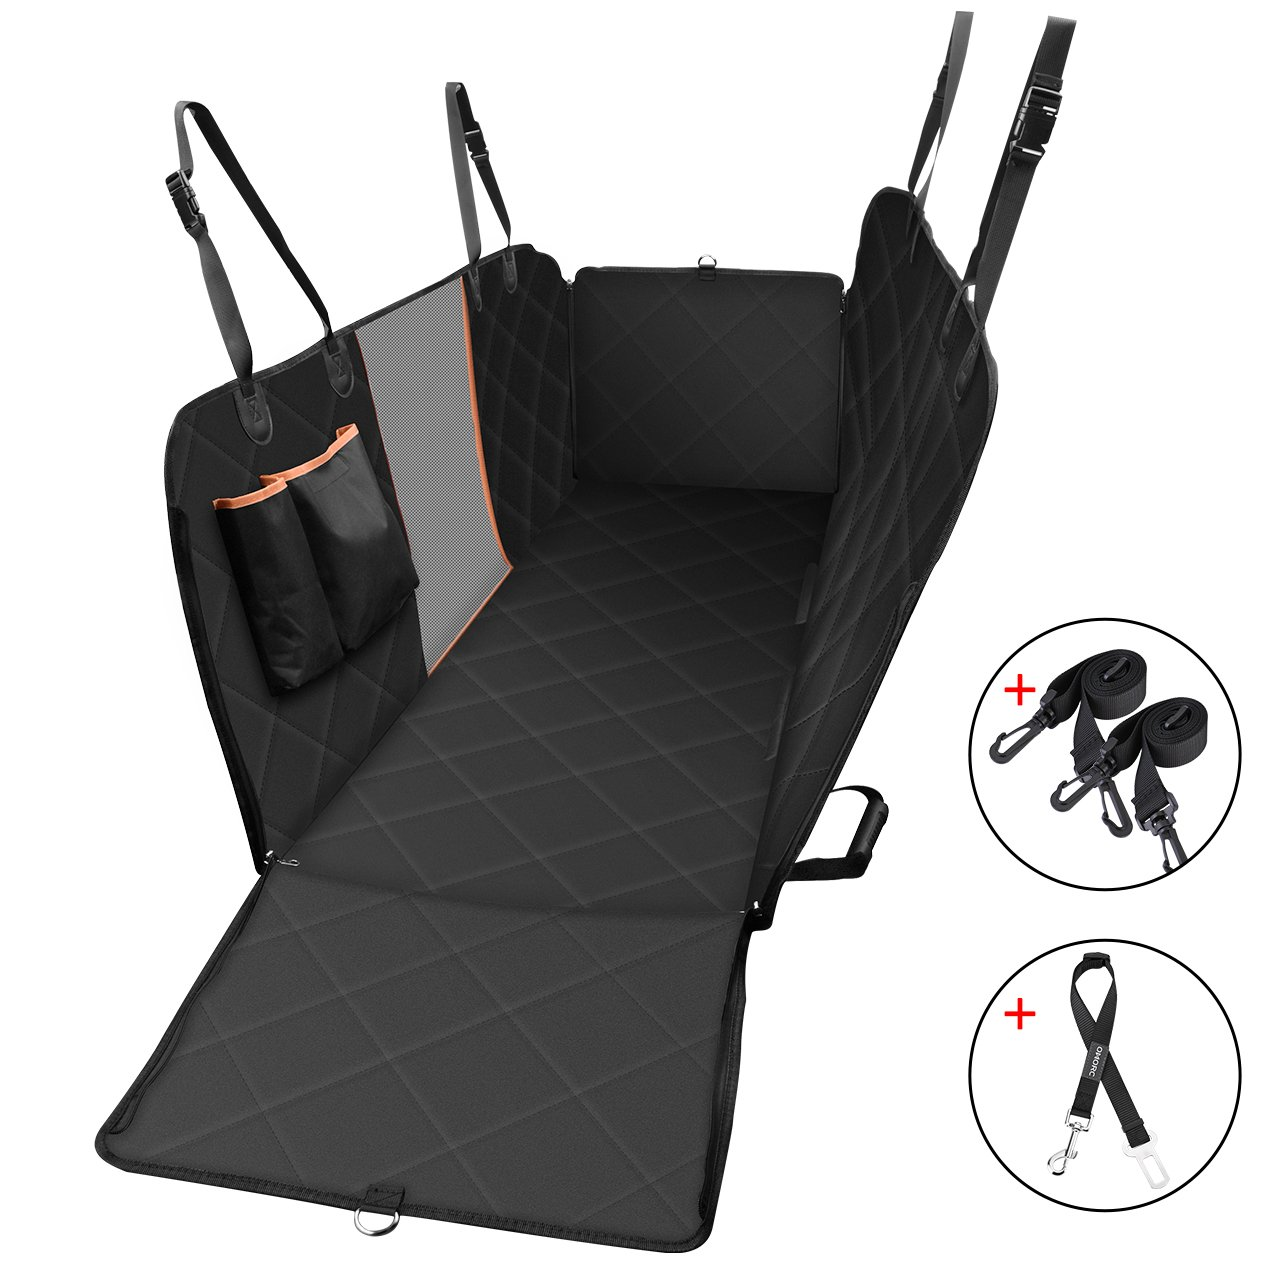 OMORC Dog Car Seat Cover with Mesh Viewing Window, Non-Scratch Waterproof Large Backseat Cover with a Storage Pocket, Nonslip Backing and Seat Anchors, Dog Travel Hammock Convertible for Cars, Trucks